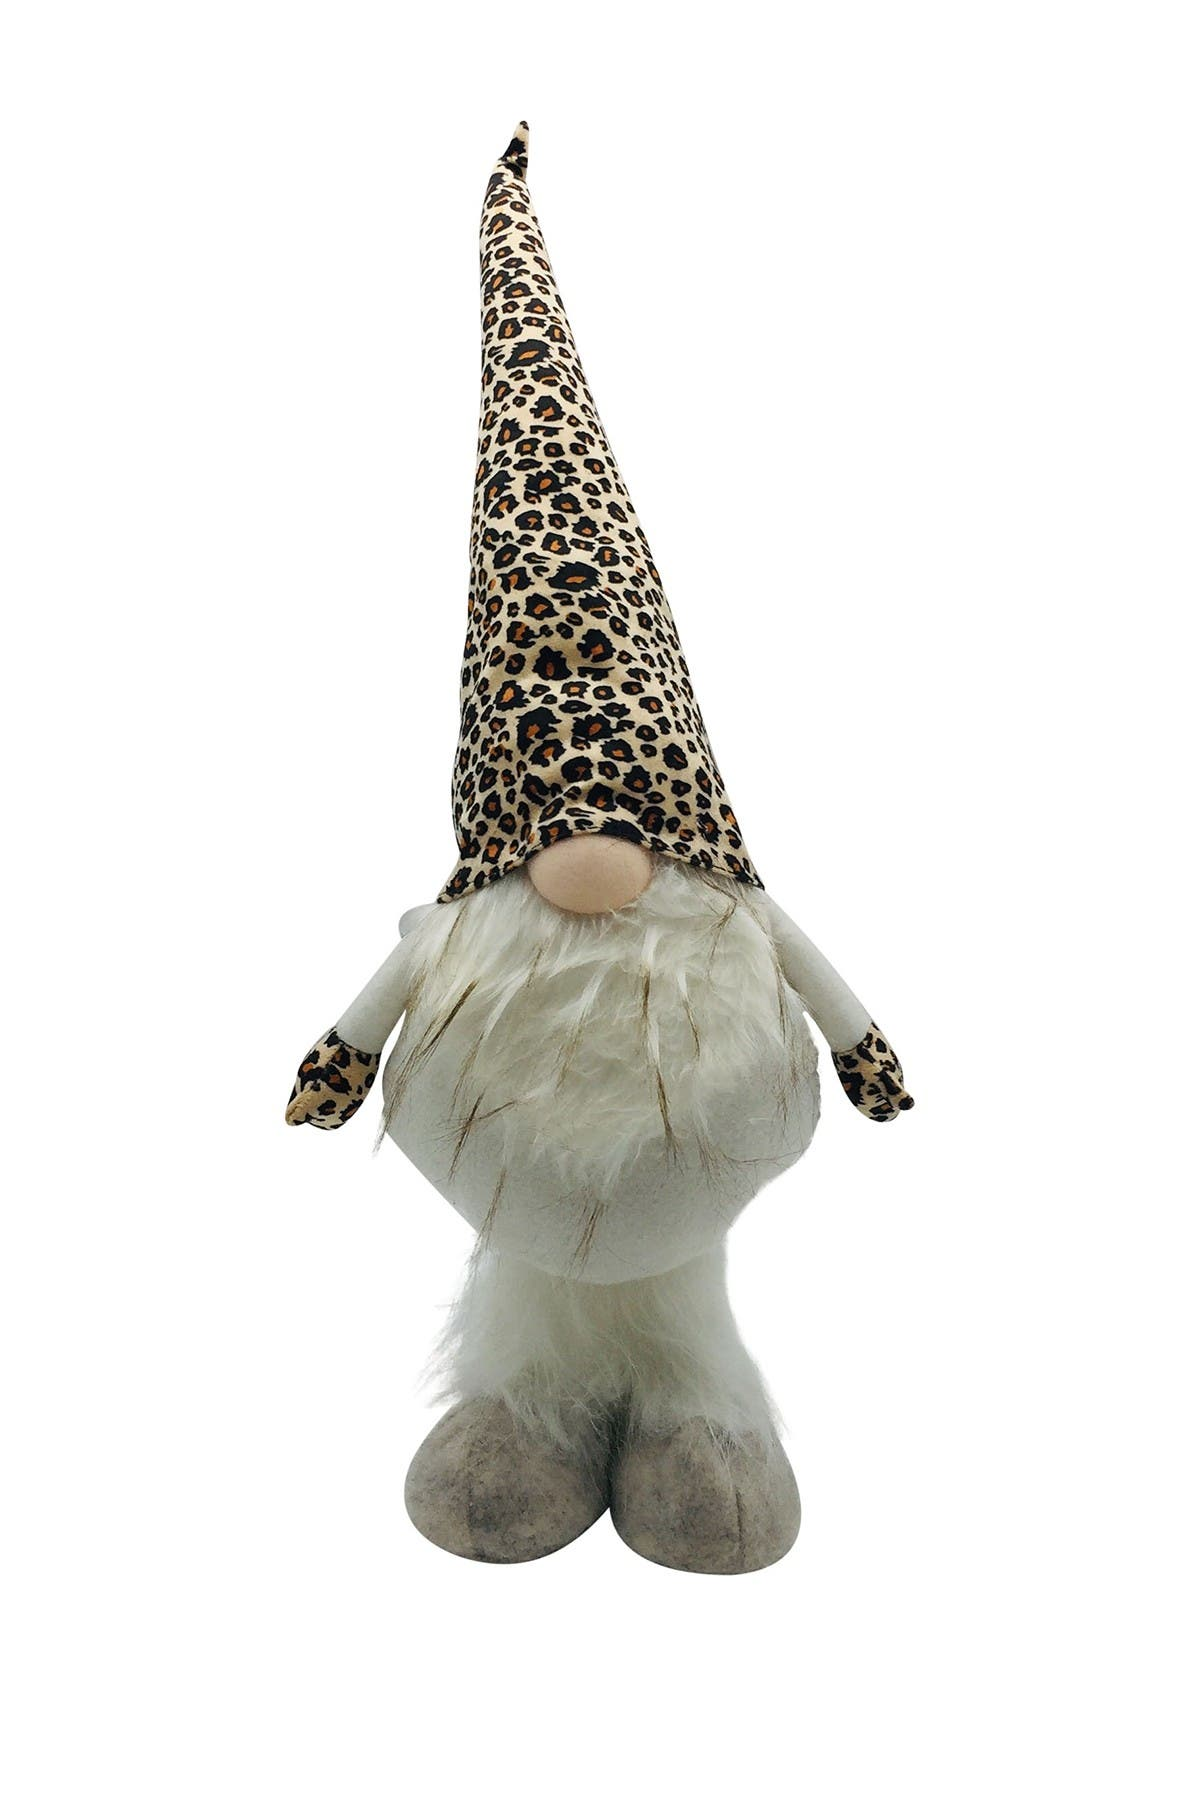 Image of G.T. DIRECT Beige Cheetah Fabric Gnome